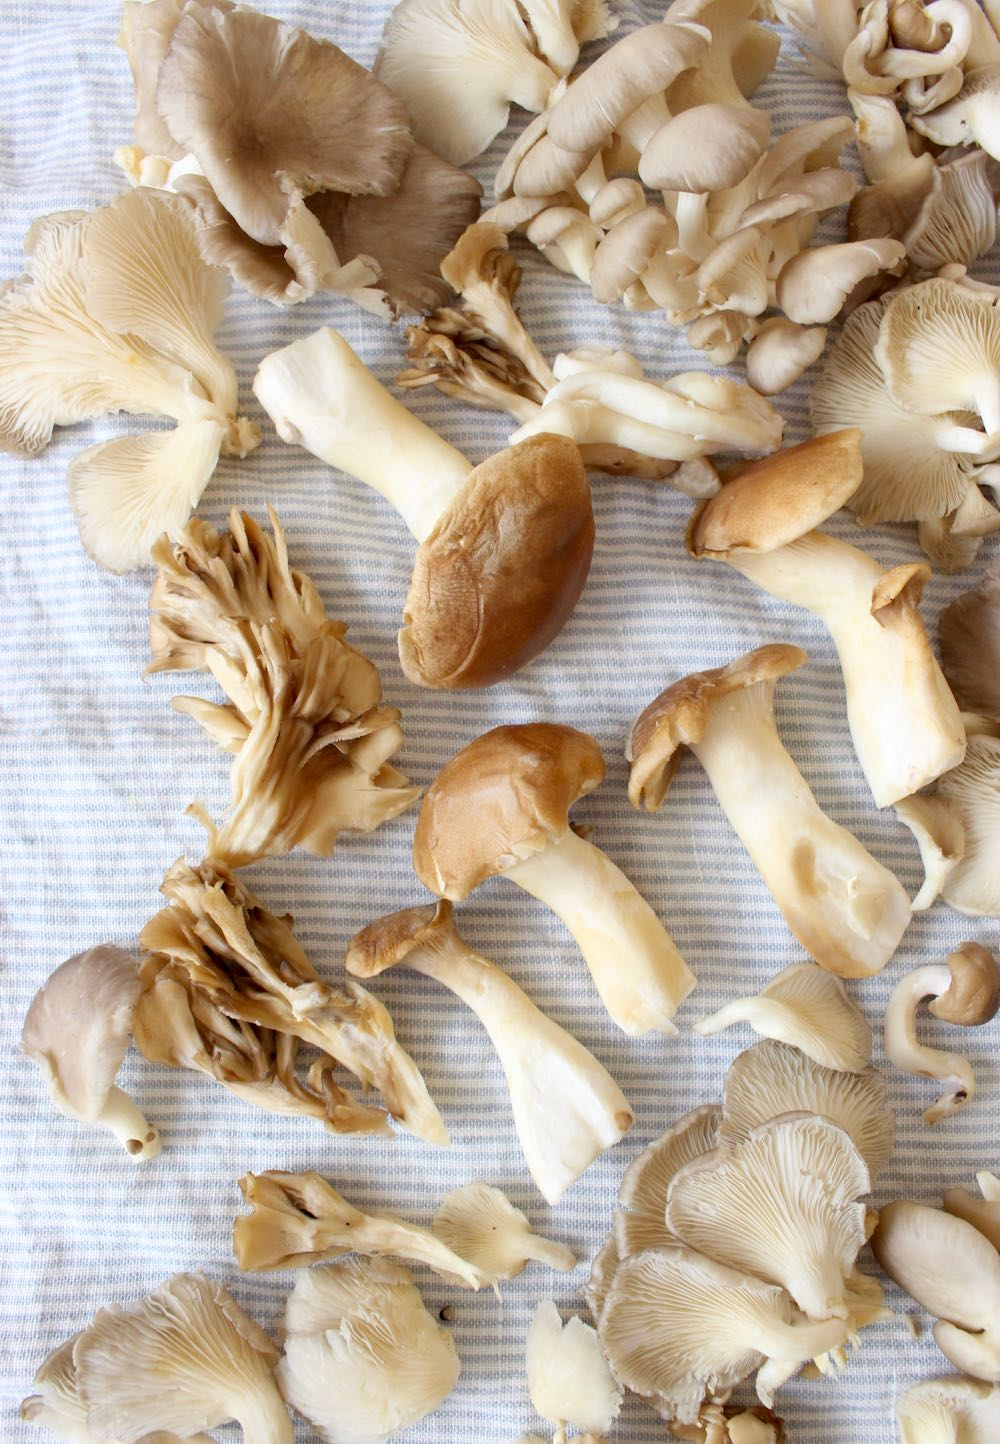 Wild Mushrooms for Risotto